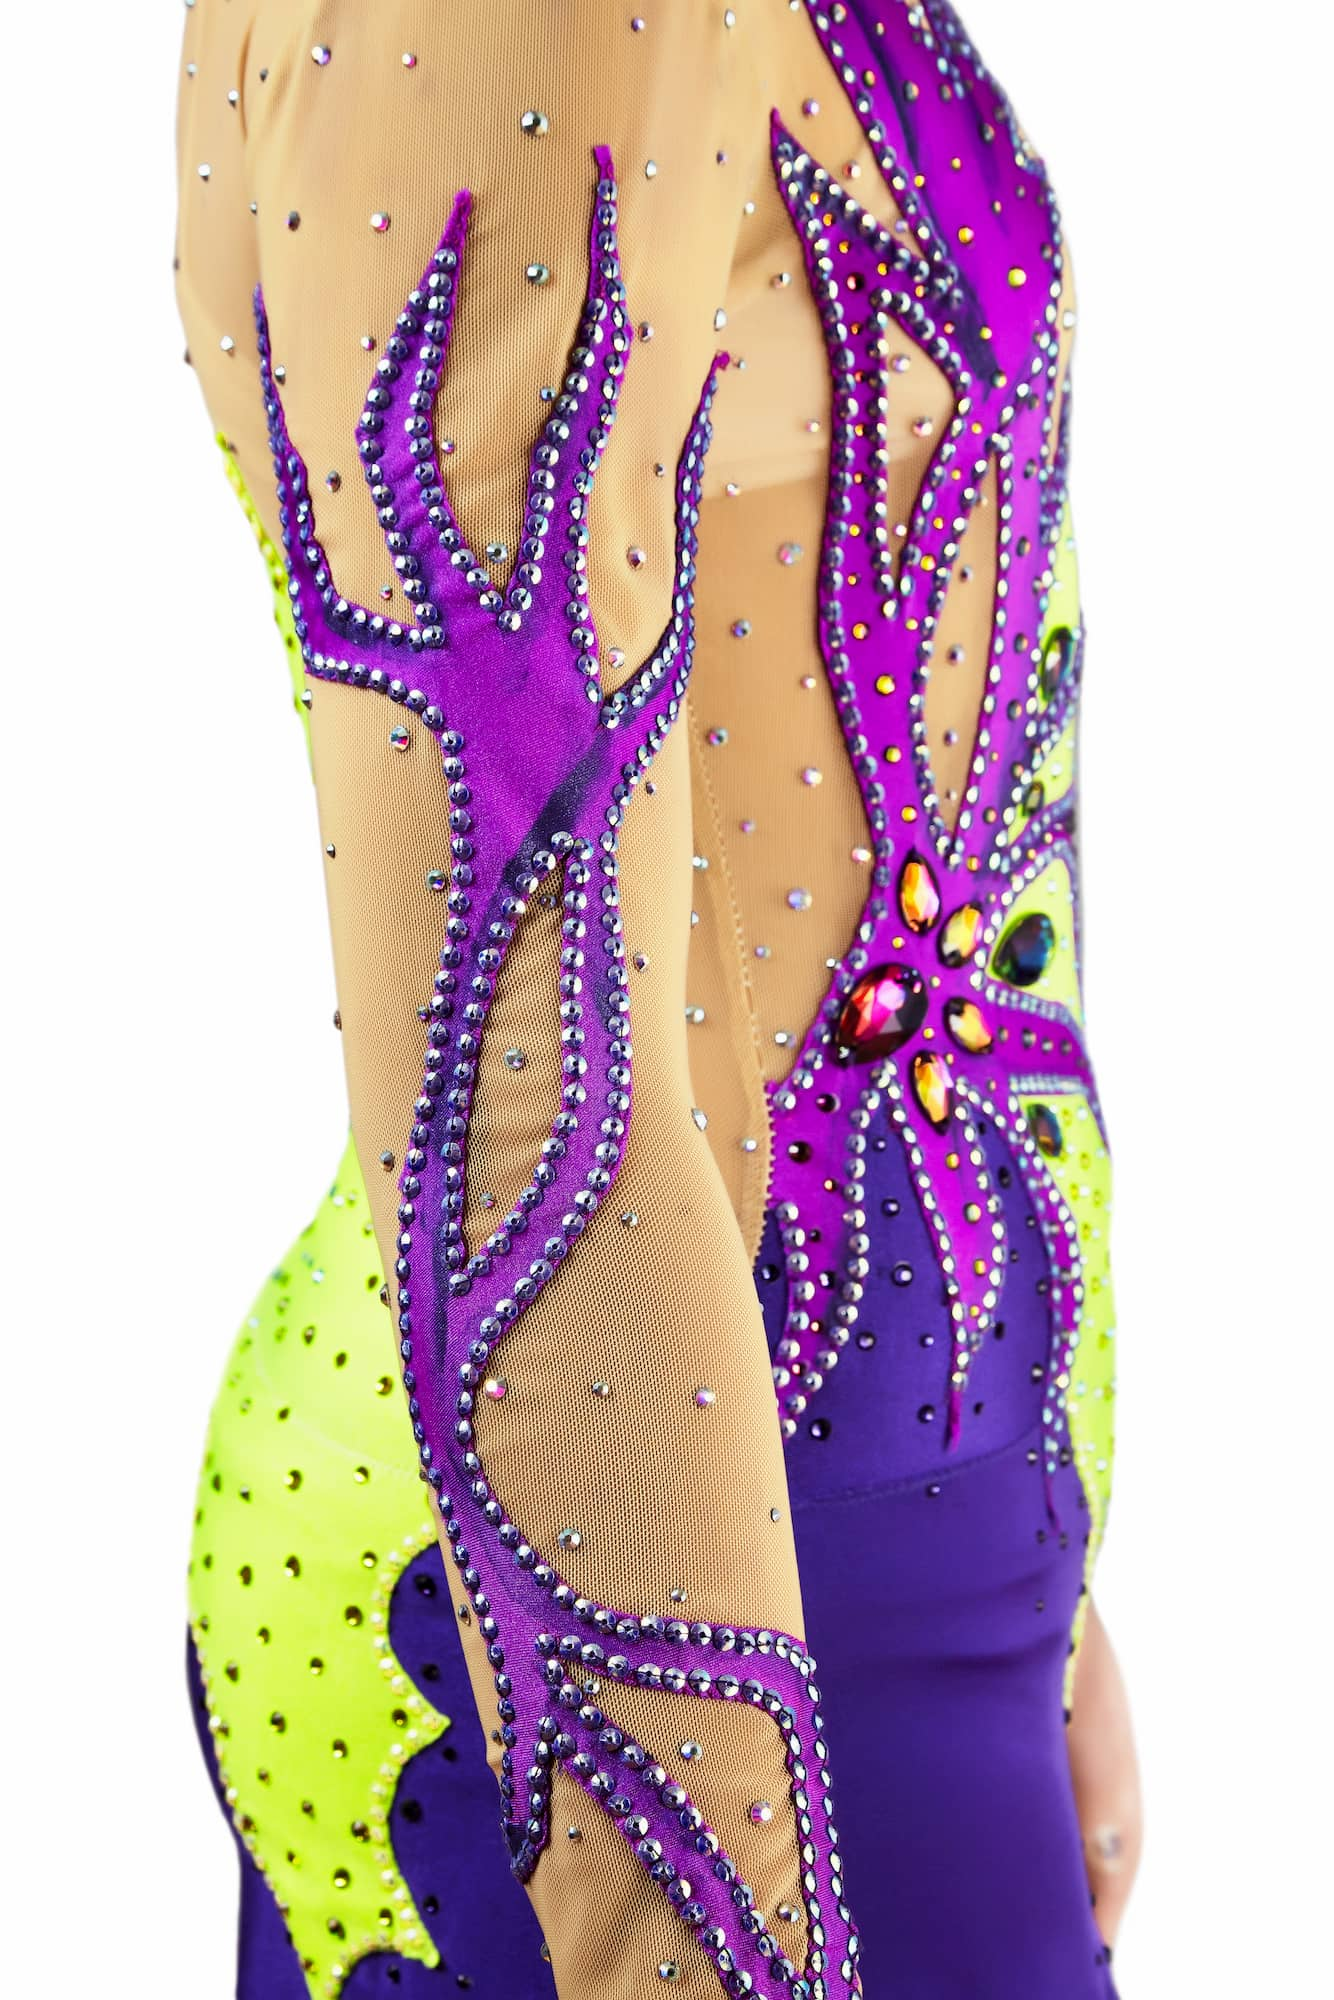 Abstract details on the right sleeve of lemon, purple, ink rhythmic gymnastics leotard № 119 for competitions